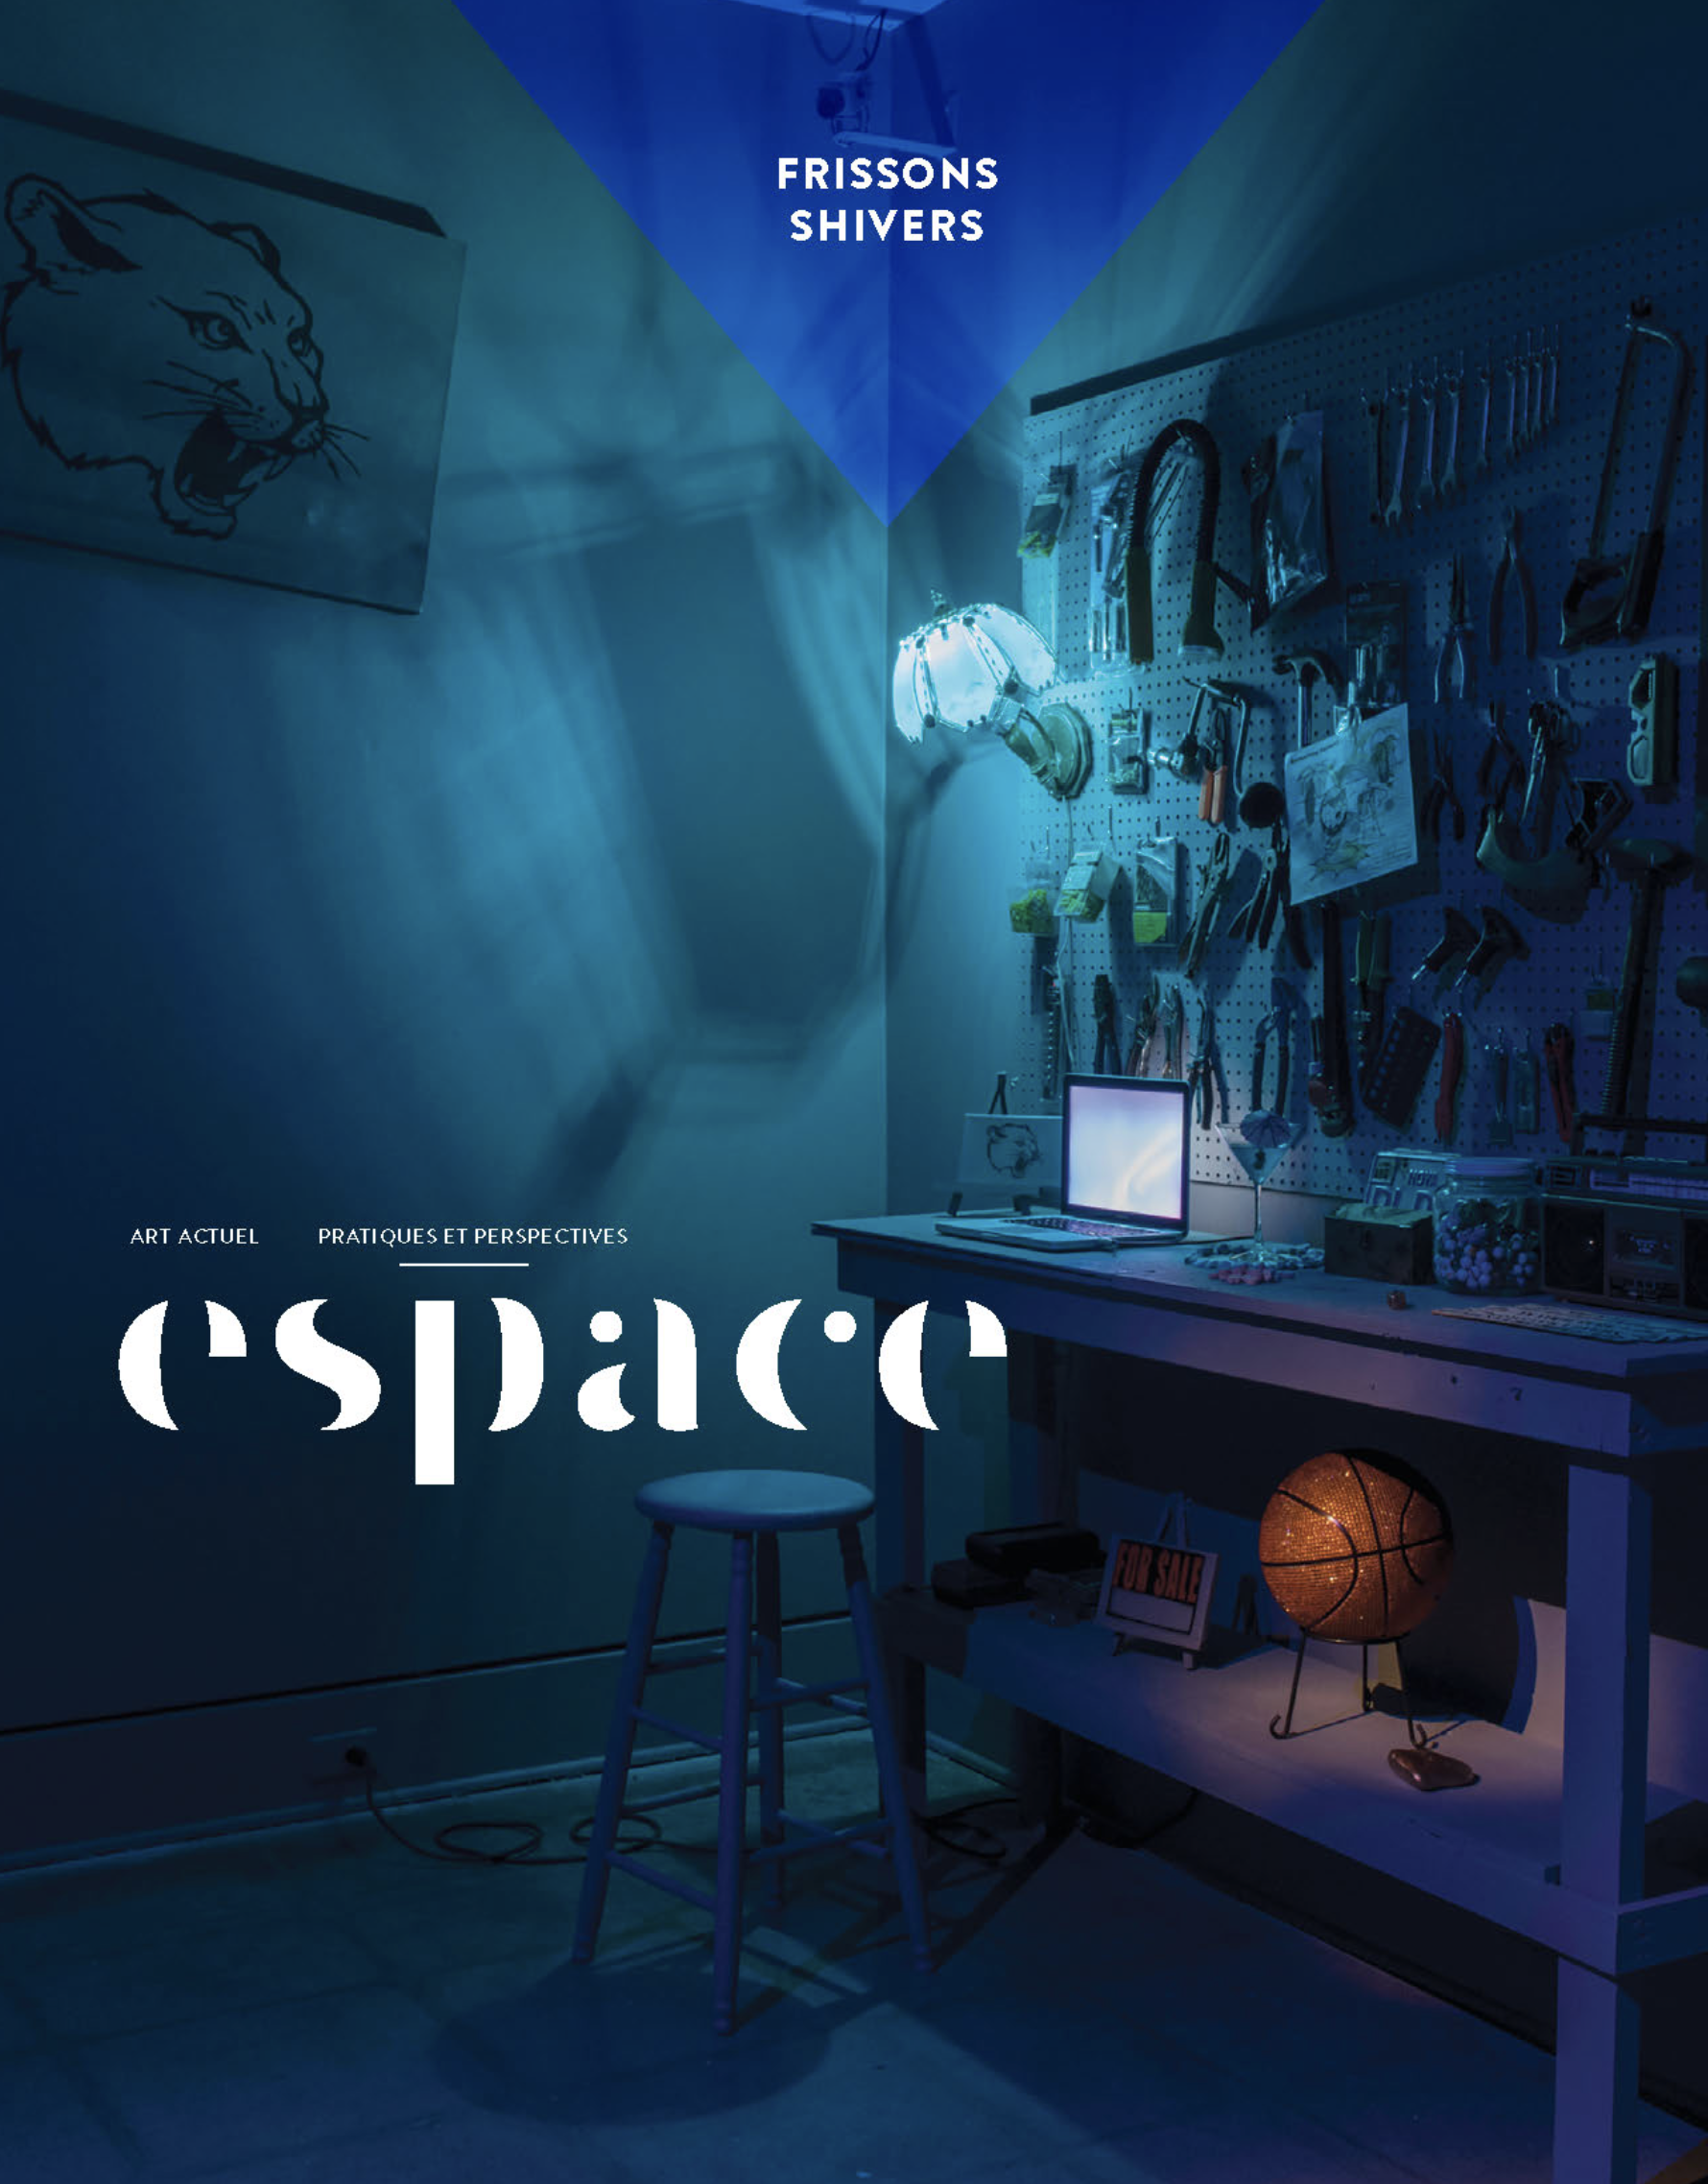 Espace Magazine: Frissons Shivers, No. 117, Fall 2017